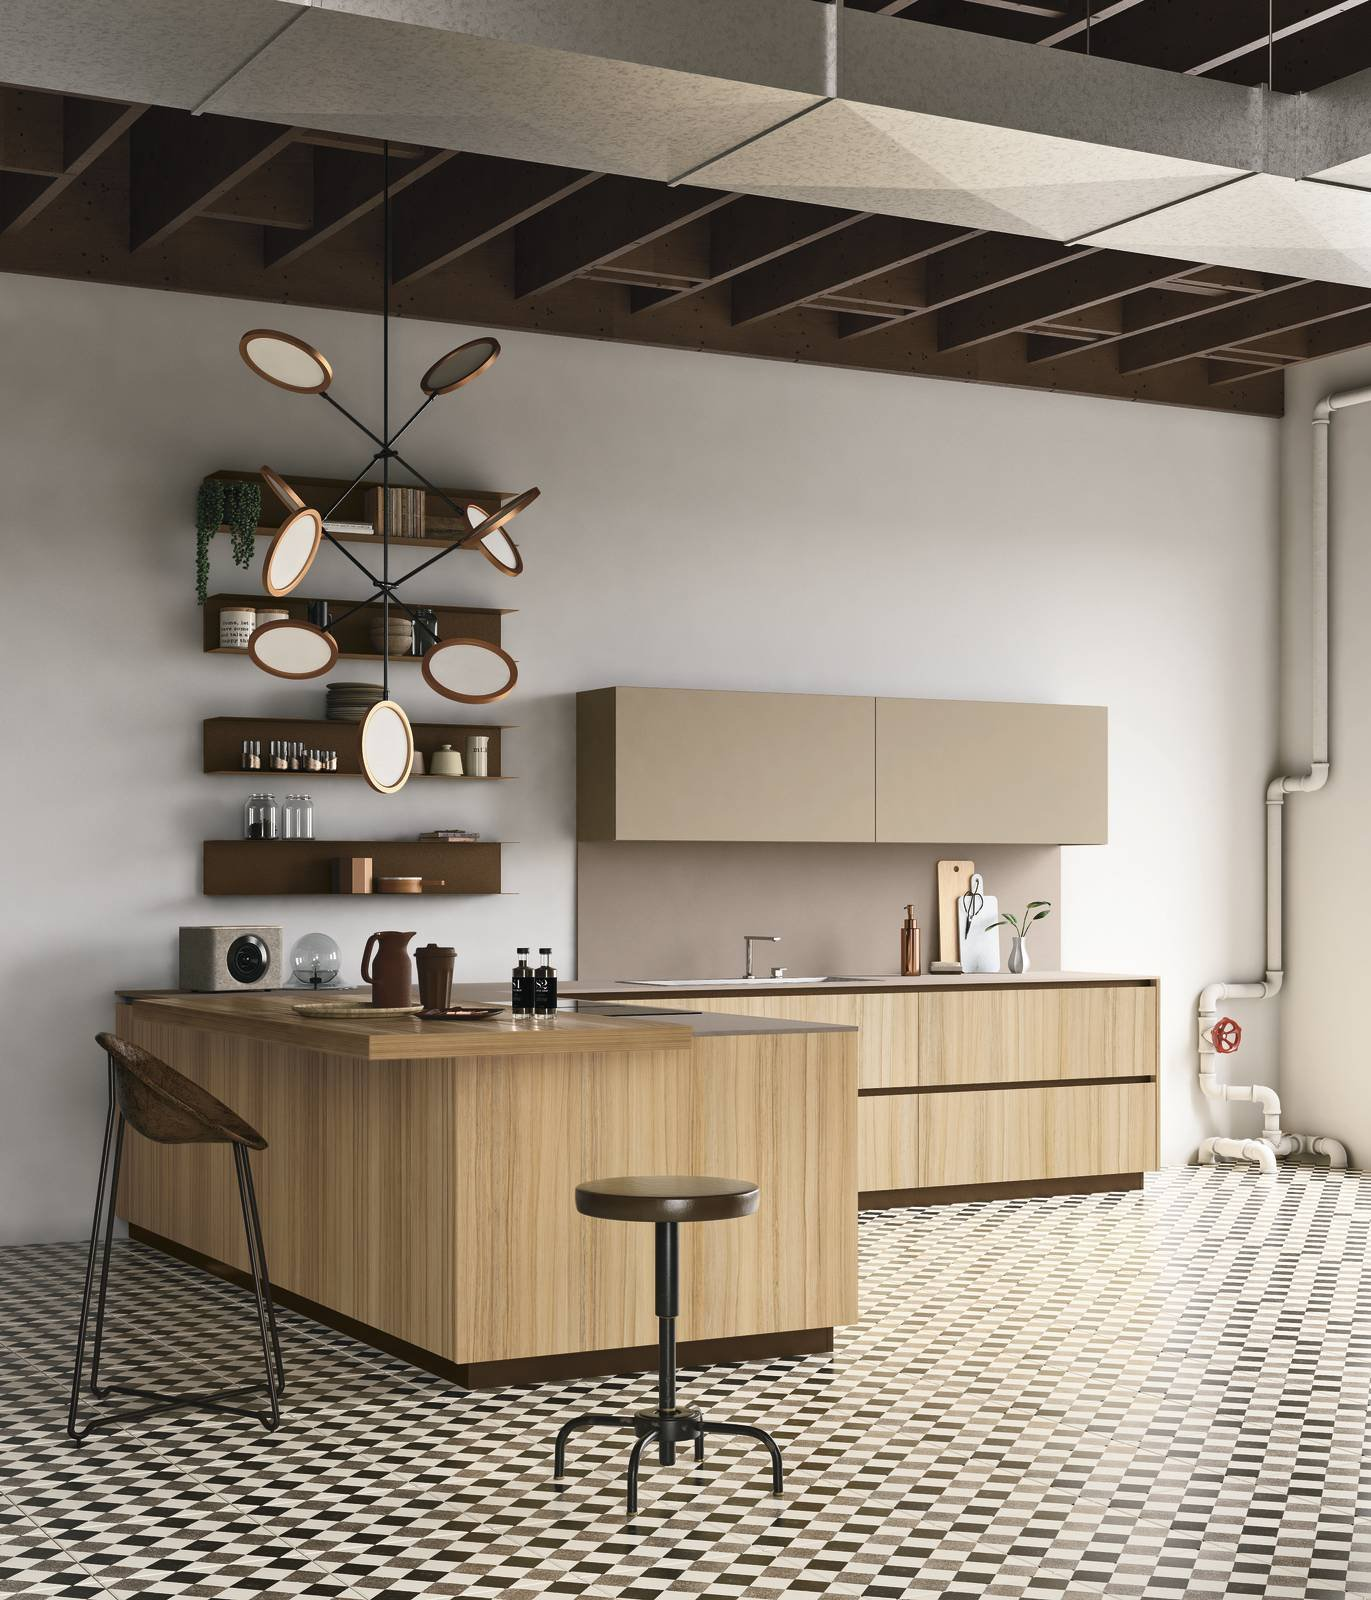 Emejing Top Cucina Bamboo Images - Design & Ideas 2017 - candp.us